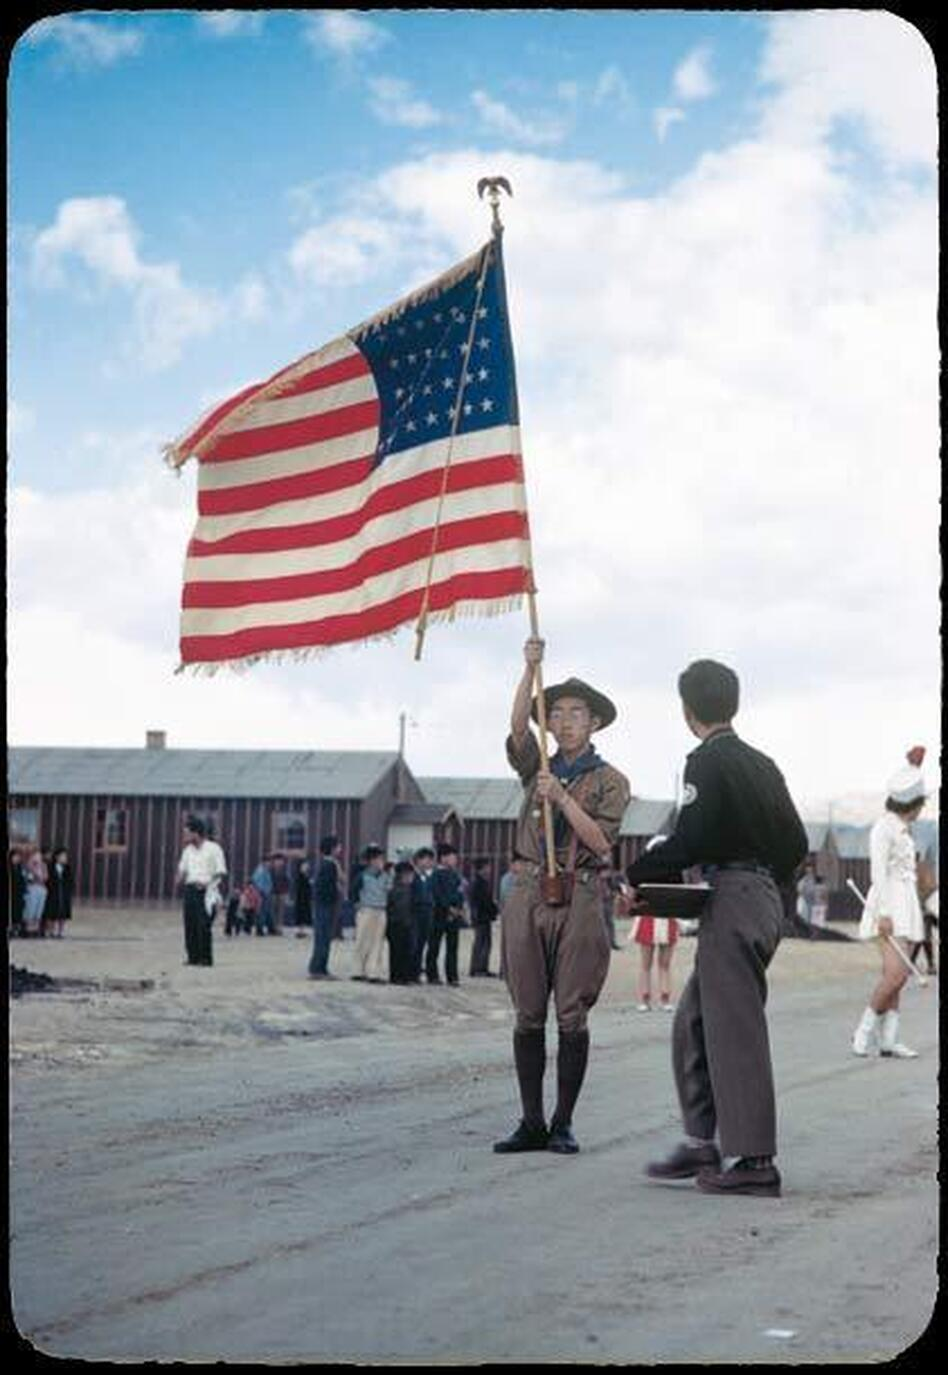 A Boy Scout carrying an American flag leads a parade through the Heart Mountain camp. (Courtesy of Takao Bill Manbo/University of North Carolina Press/Center for Documentary Studies, Duke University)